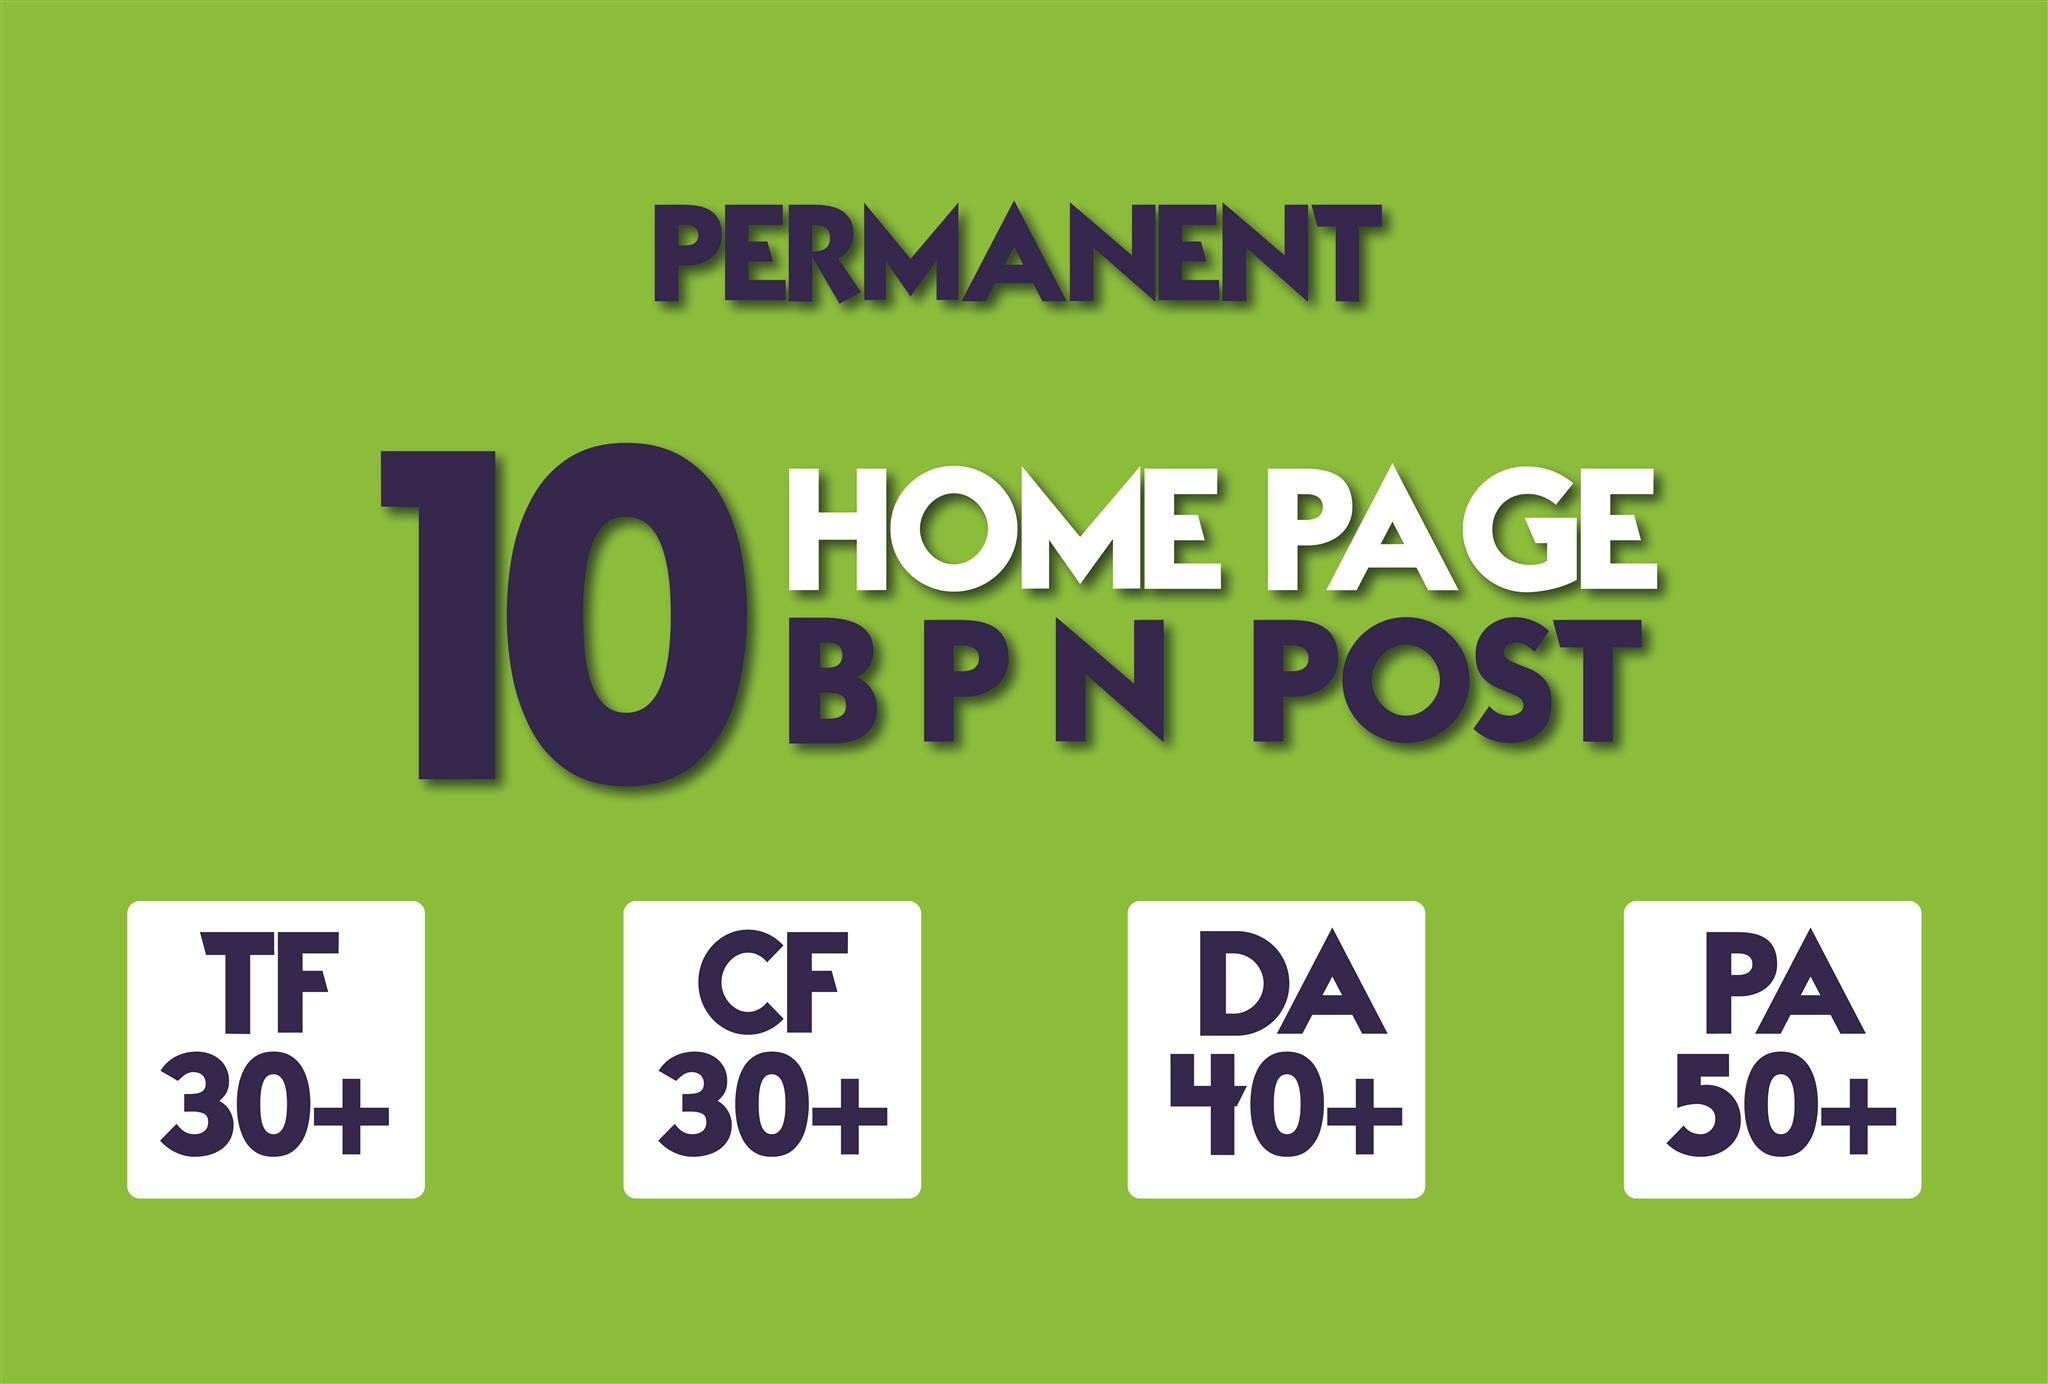 Create 8 Manual HIGH TF CF 20+ DA 15+ PA 35+ Dofollow PBN Backlinks